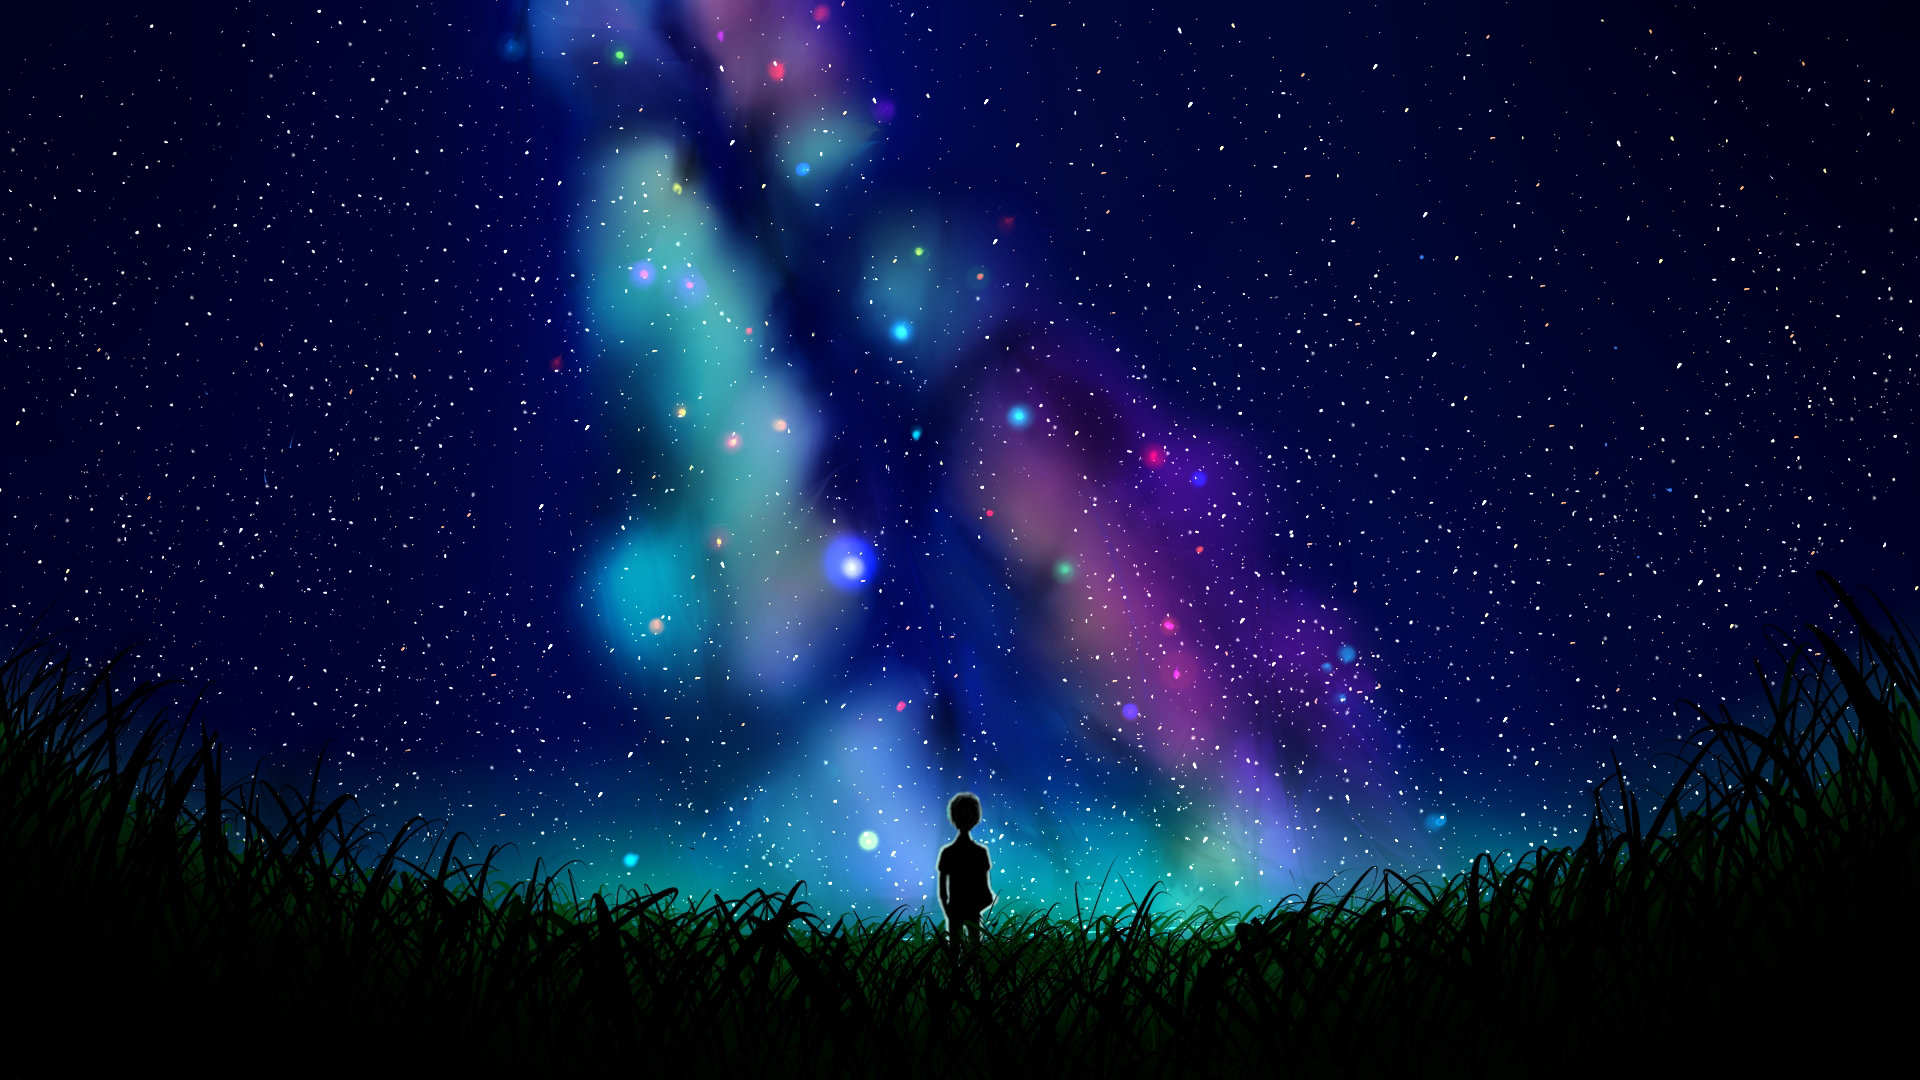 1920x1080 Alone In The Universe Art 1080P Laptop Full HD ...